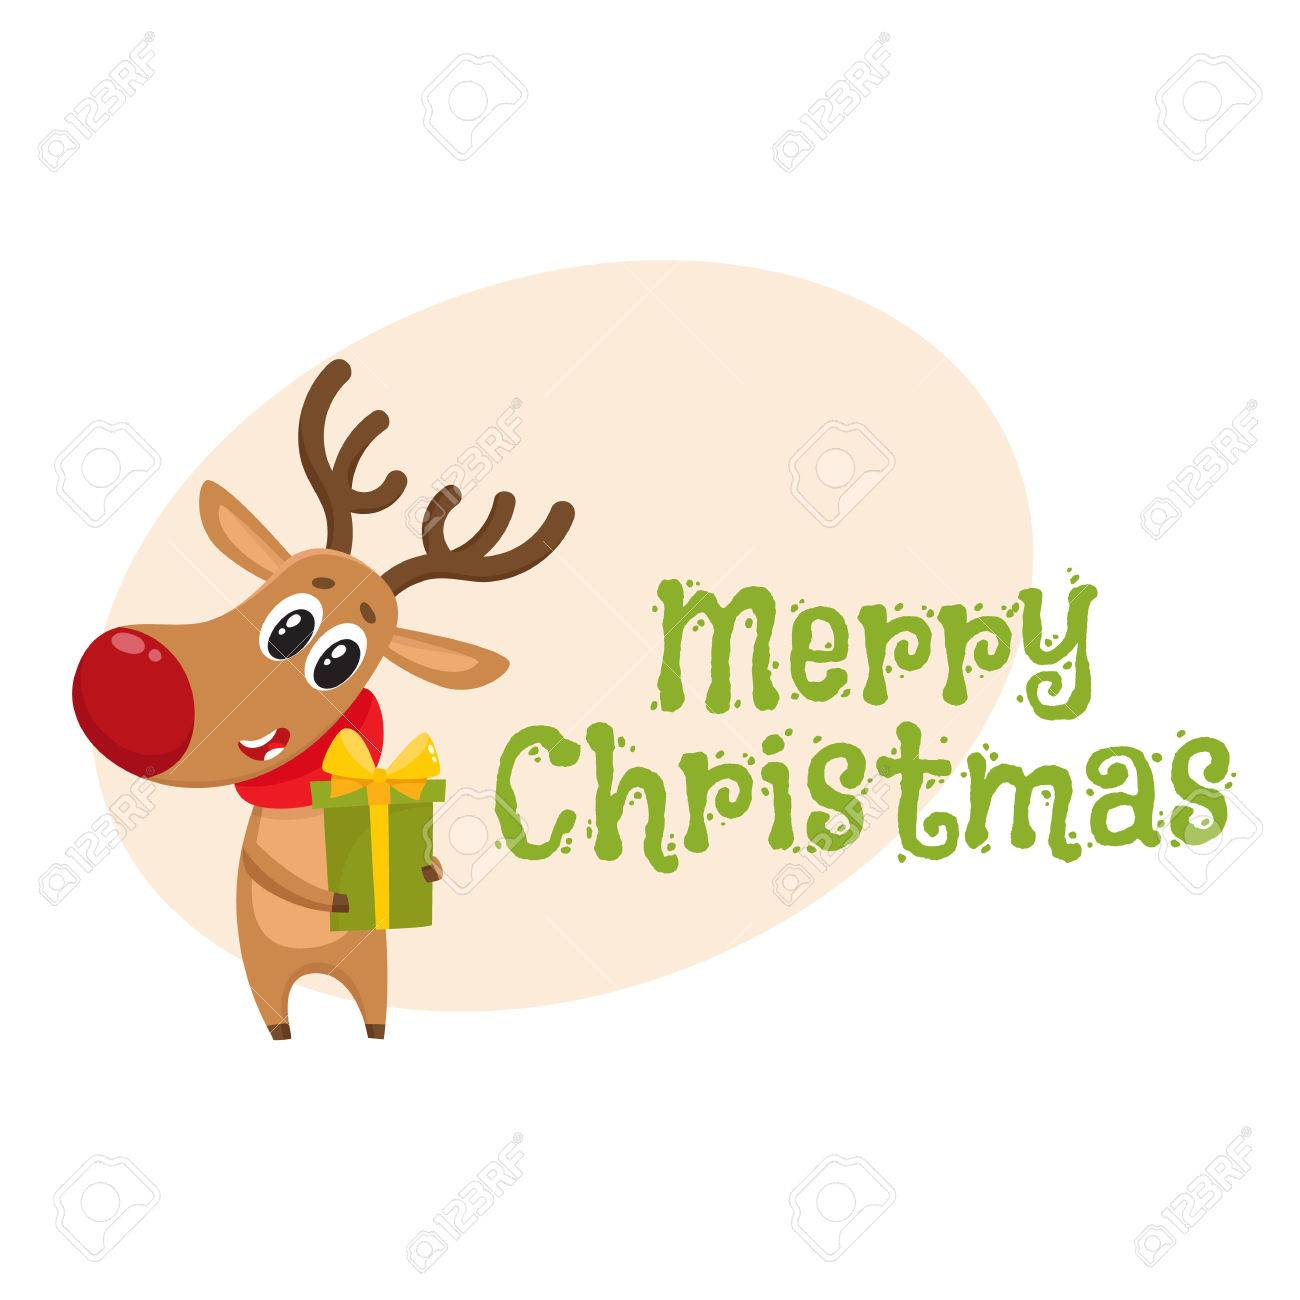 merry christmas greeting card template with funny reindeer in